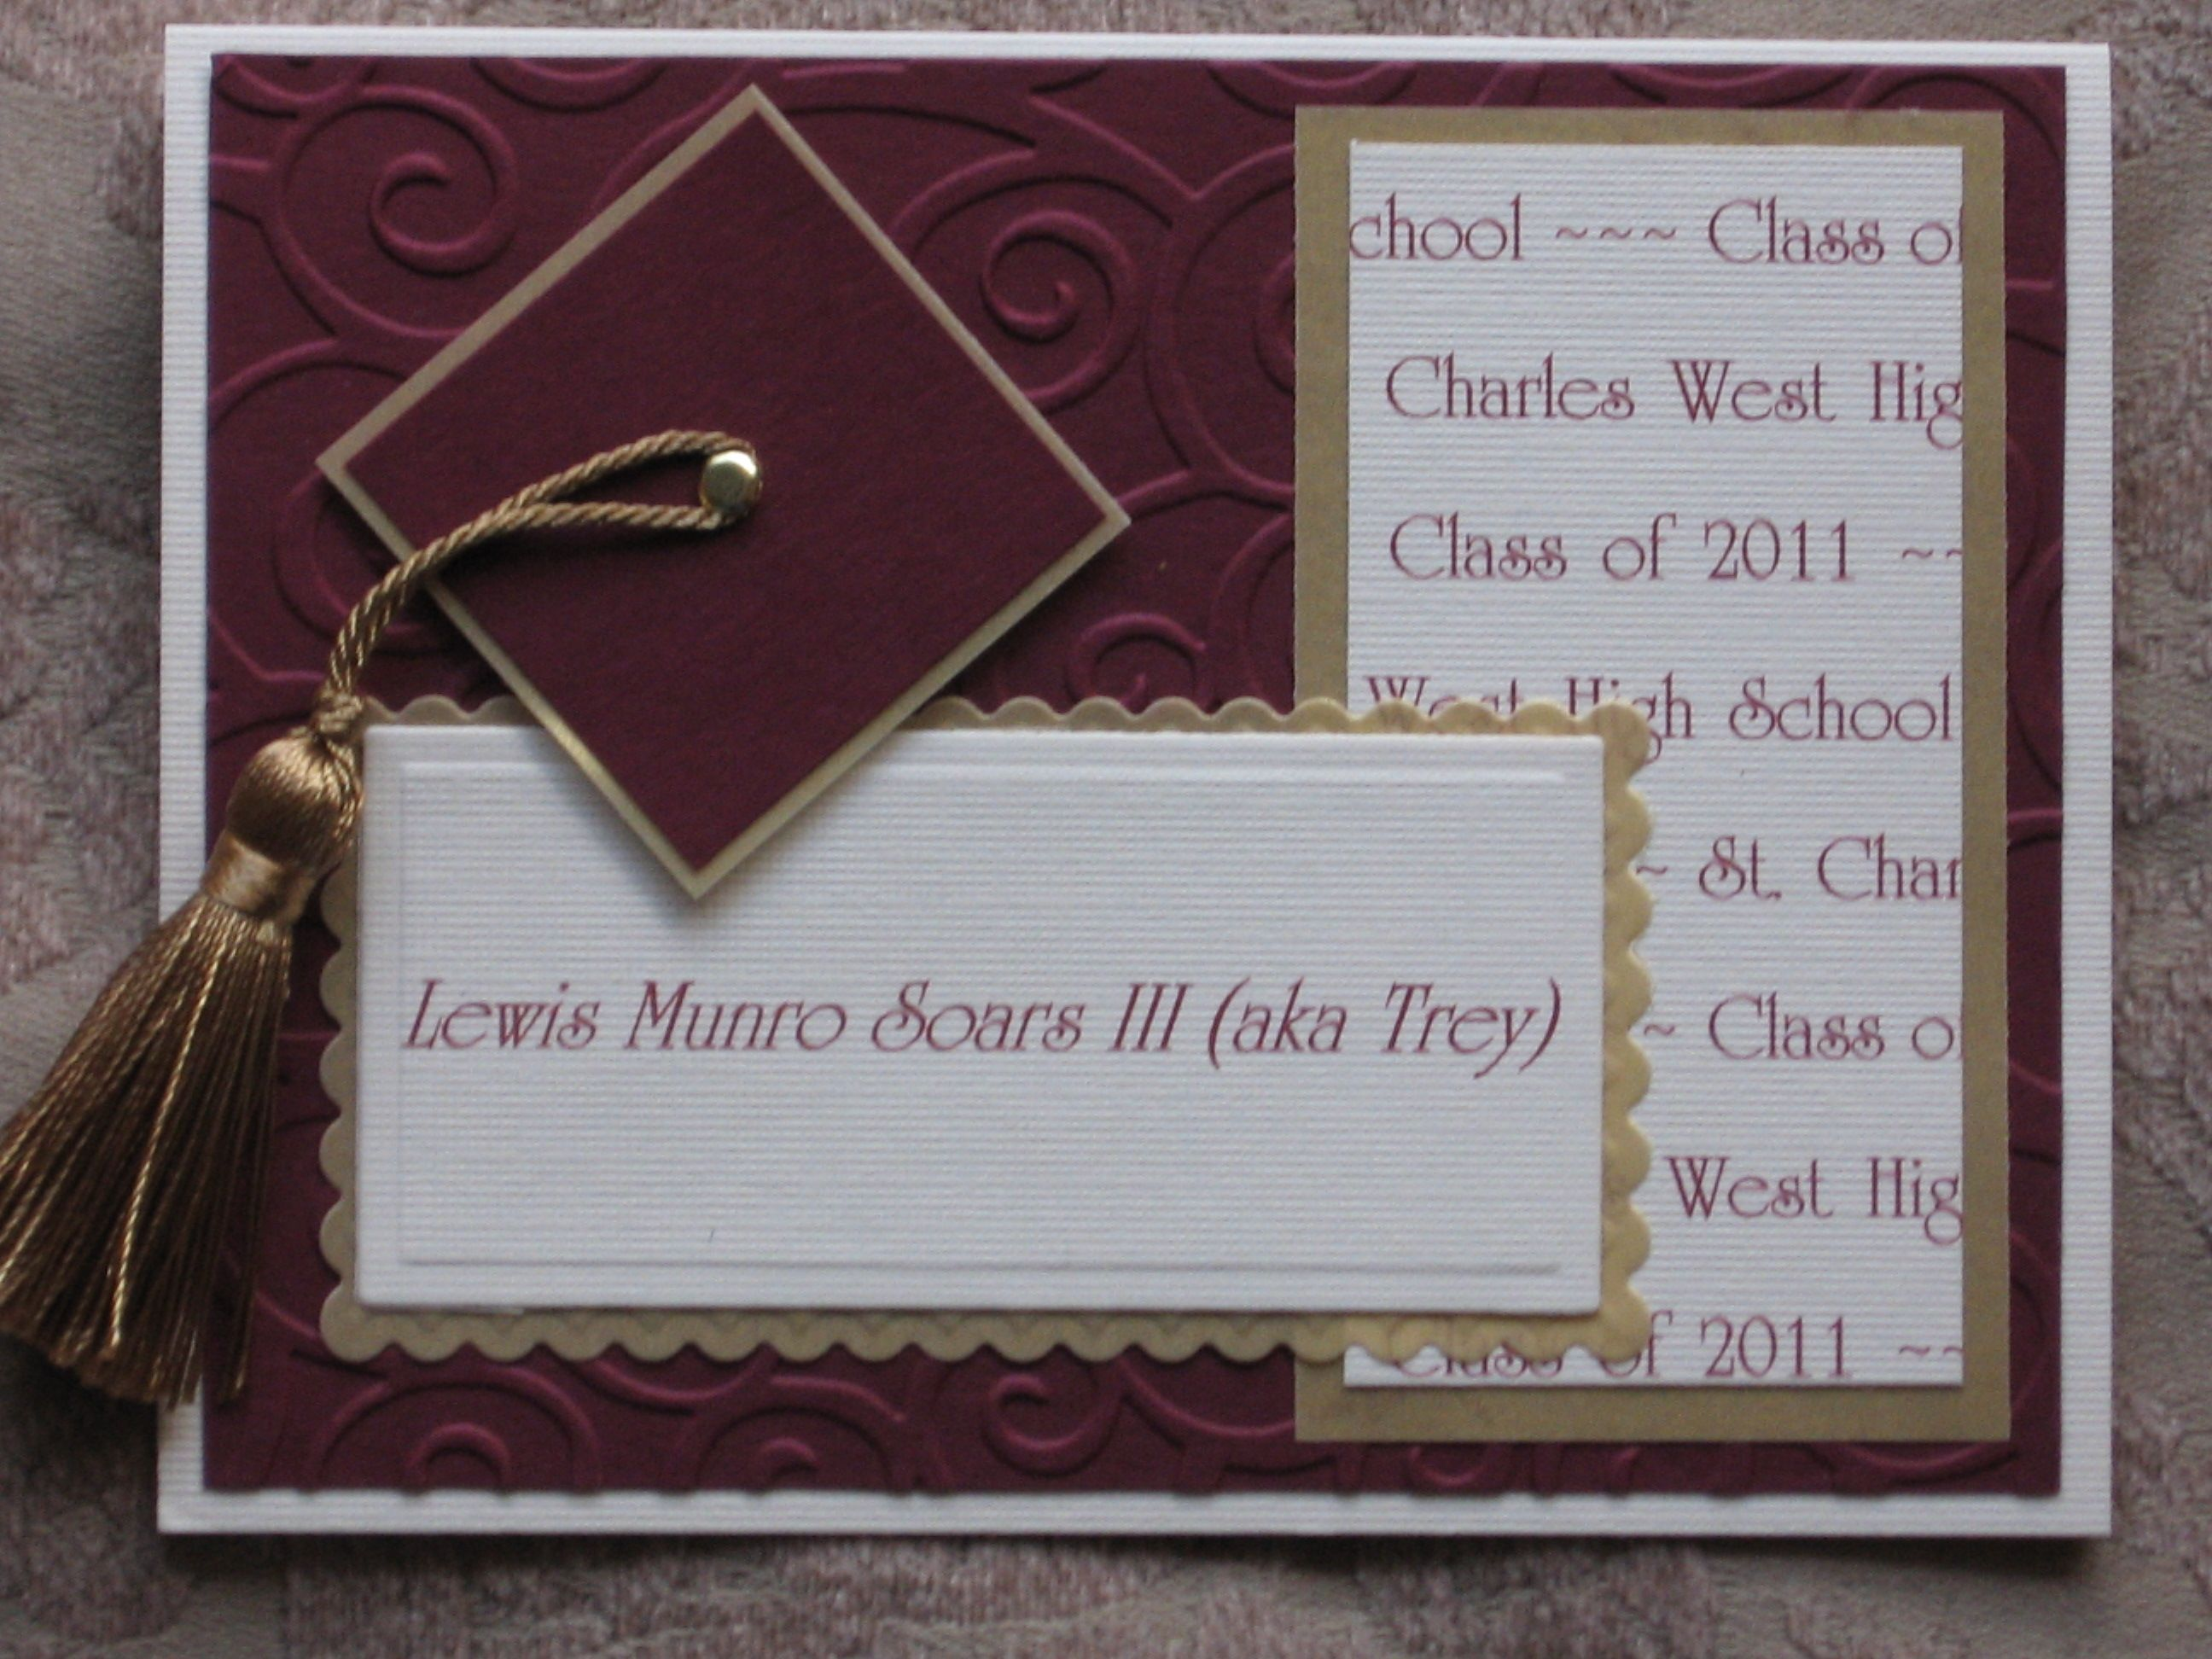 Graduation Announcement Birthday Card – Graduation Invitations Templates 2011